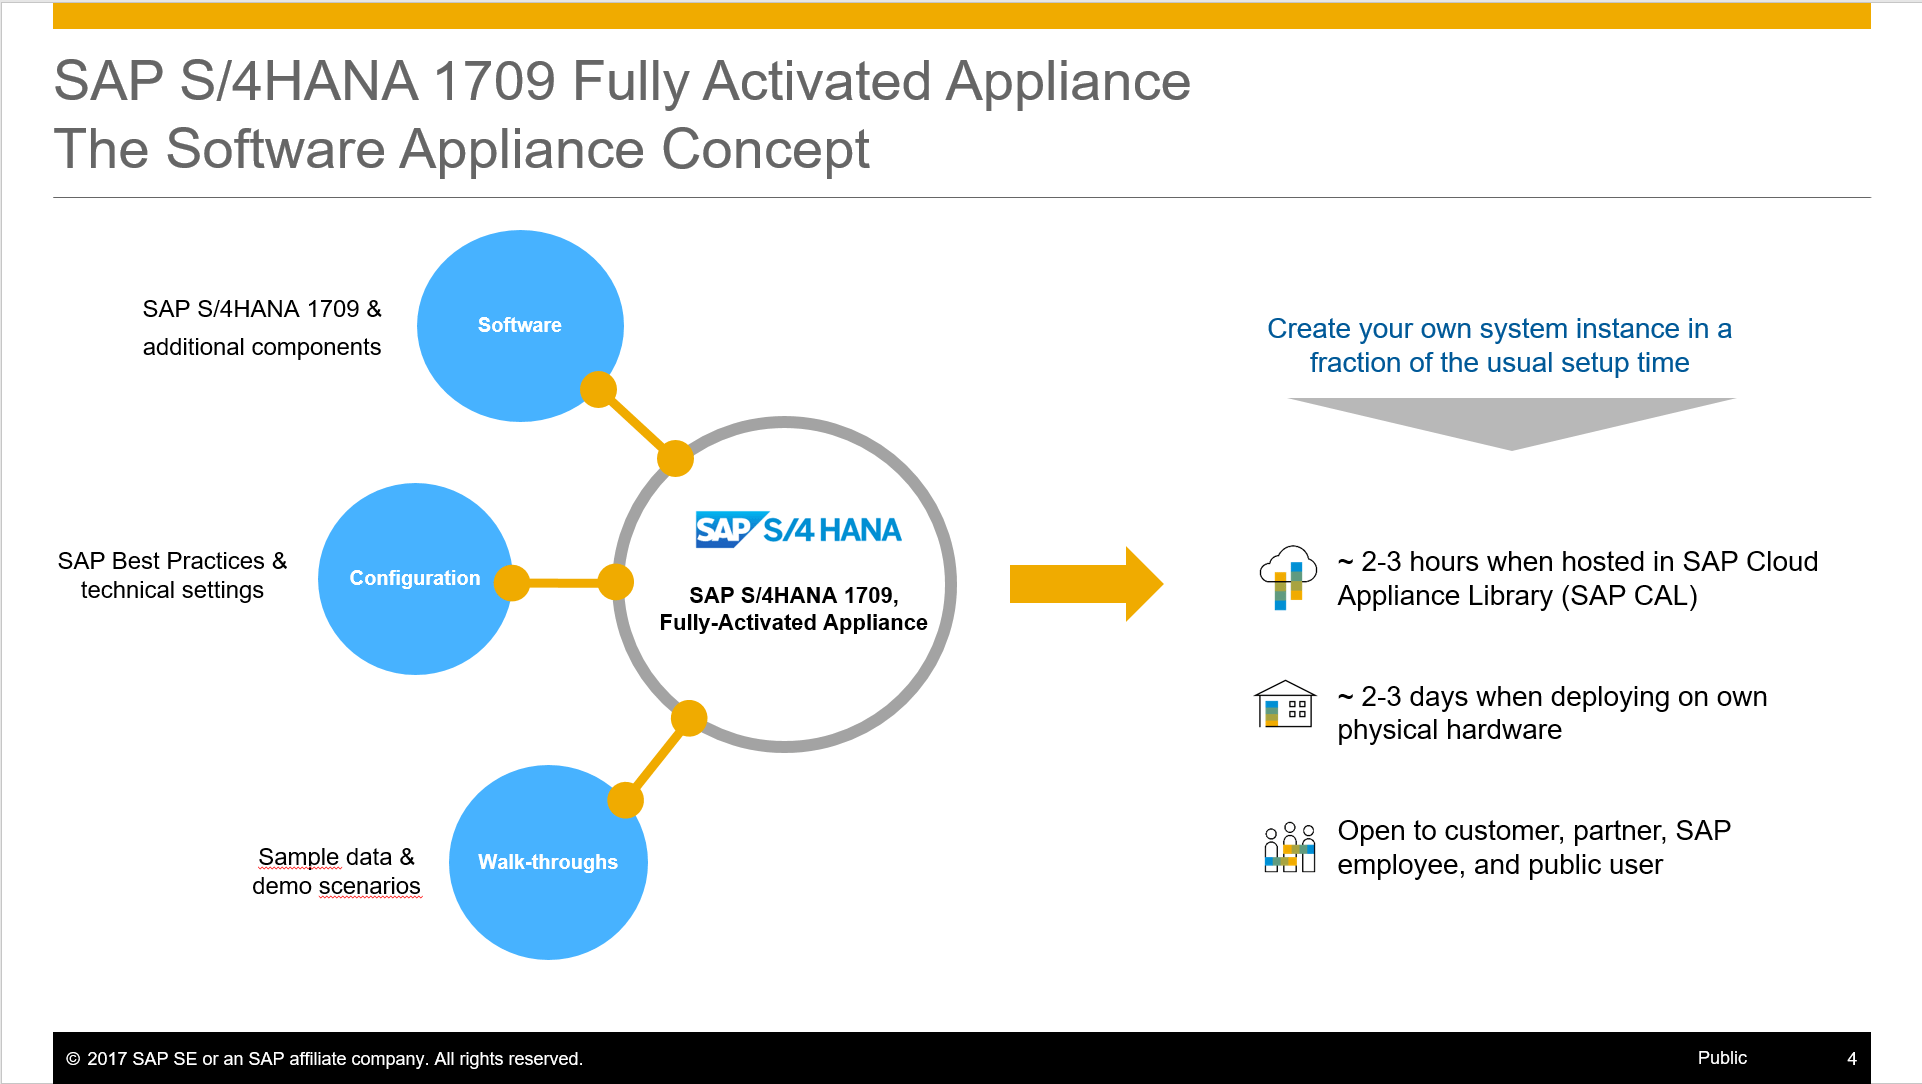 hight resolution of  fig 1 sap s 4hana 1709 fully activated appliance concept